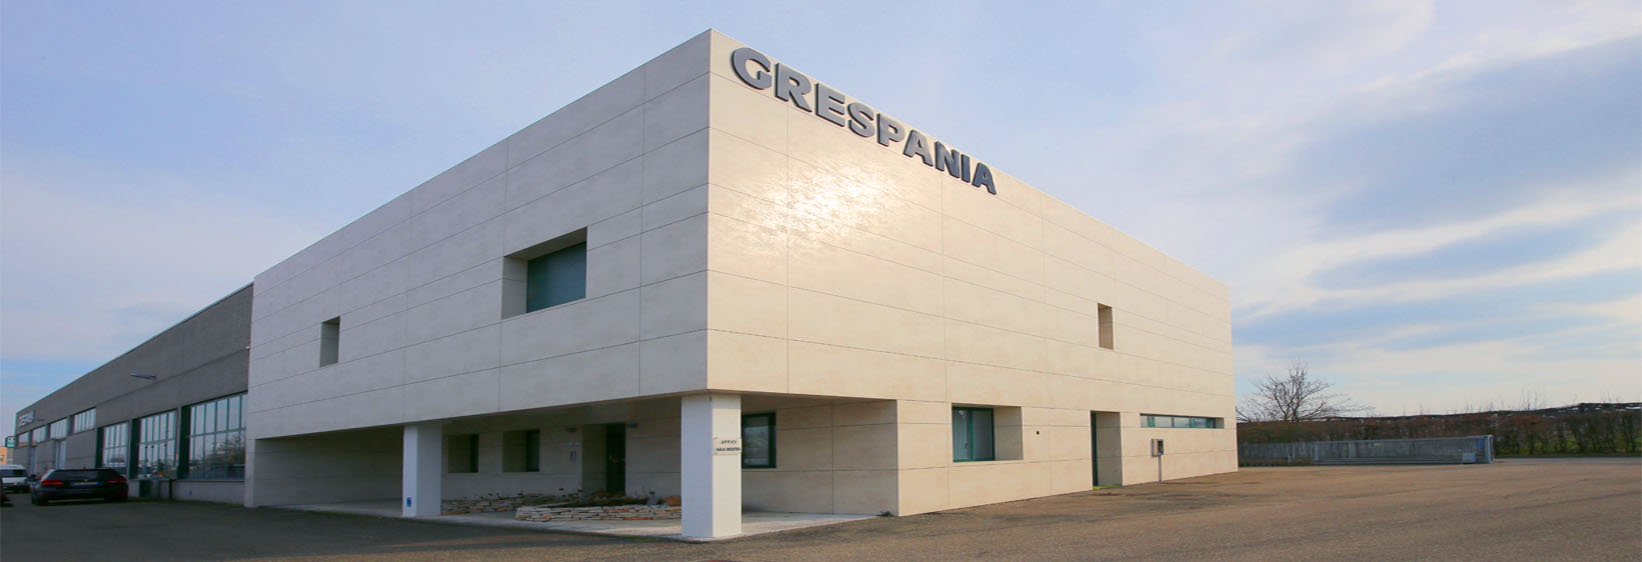 REFURBISHED EXHIBITION SPACE GRESPANIA ITALY